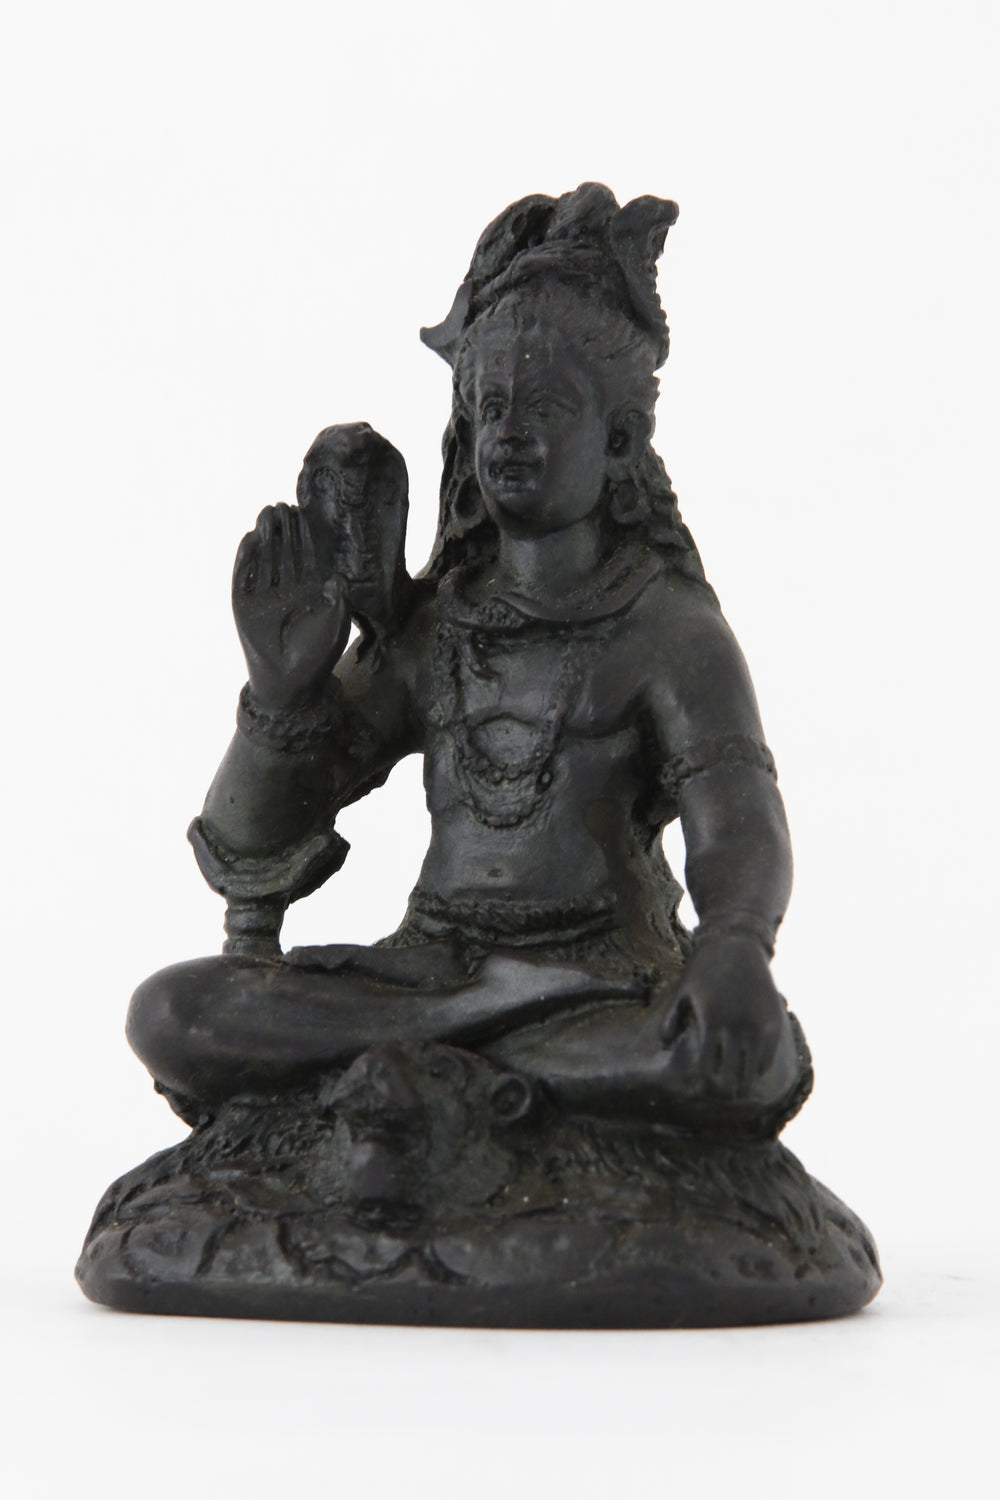 SHIVA BLESSING STATUE DARK SMALL SIZE SIDE VIEW